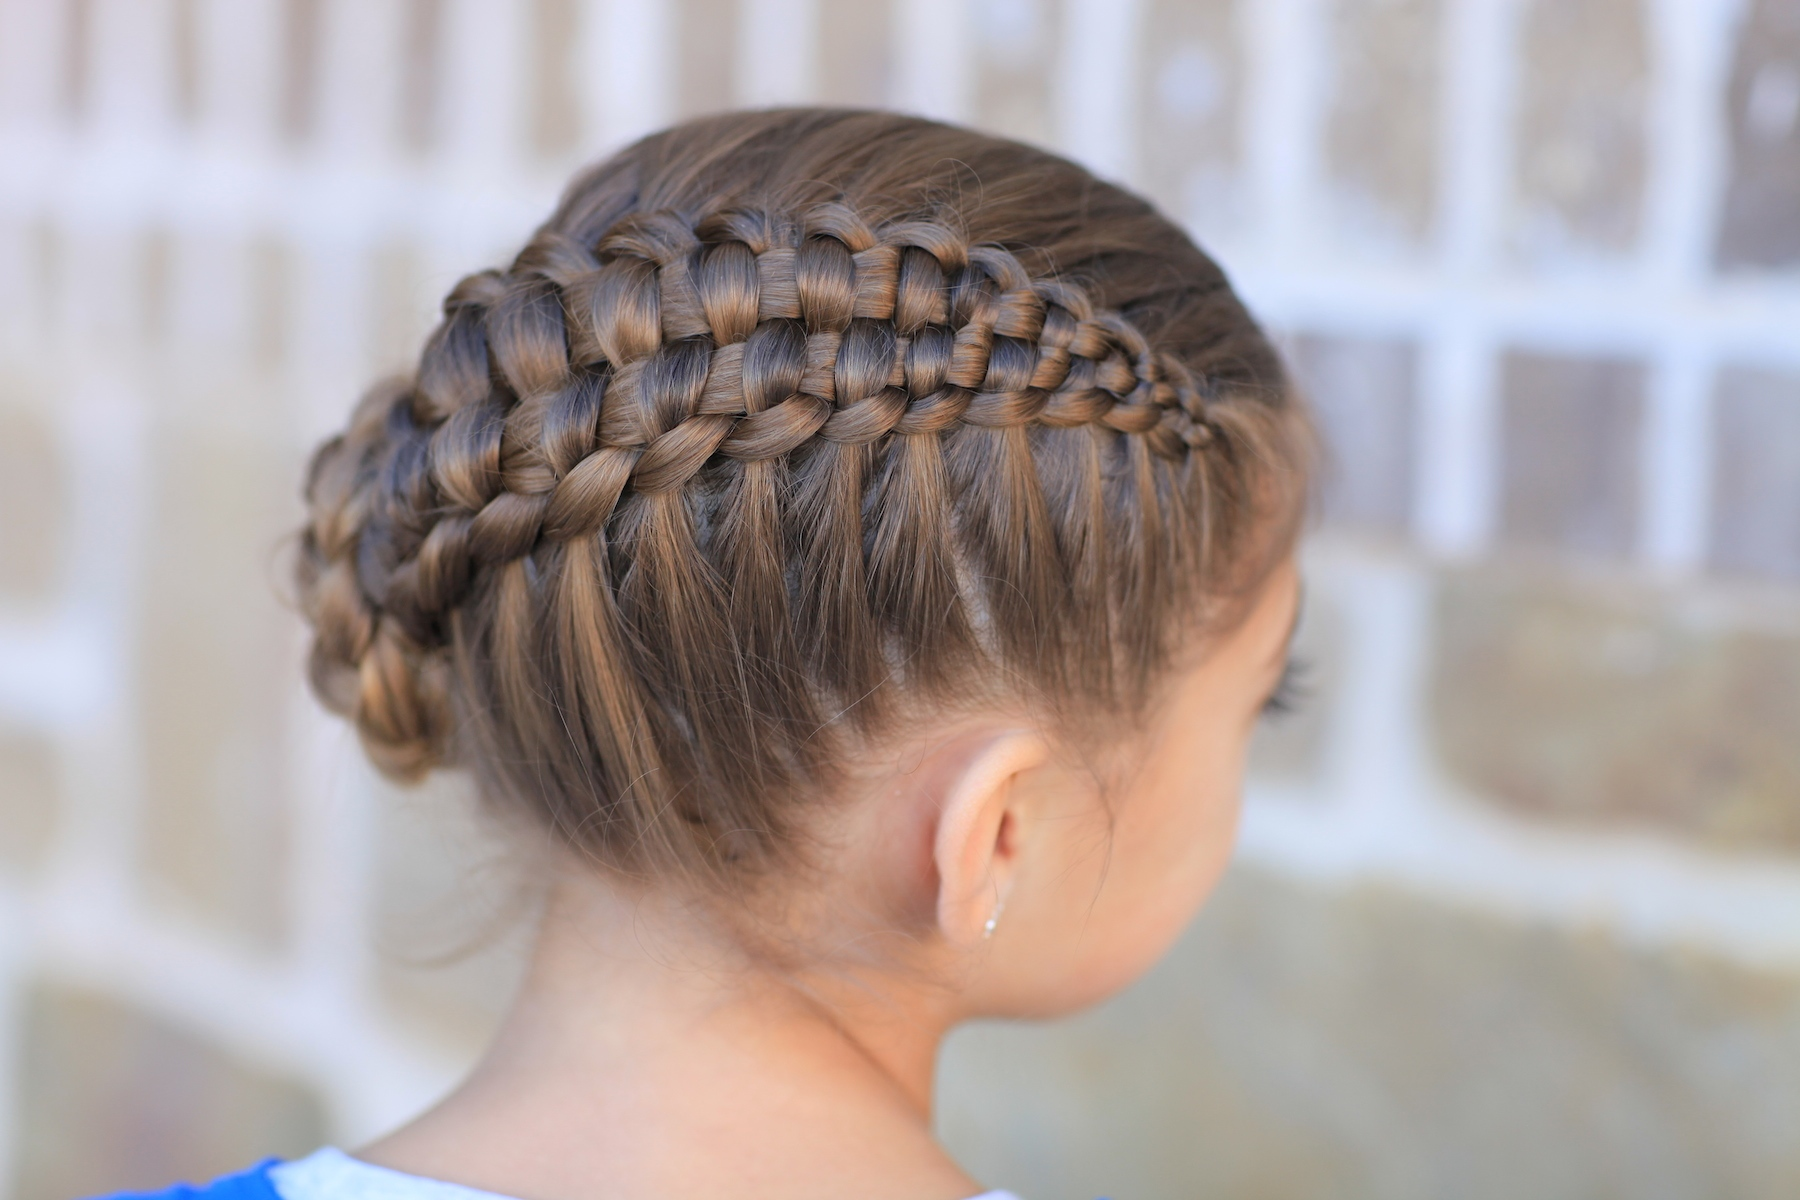 How to Create a Zipper Braid | Updo Hairstyles | Cute ...